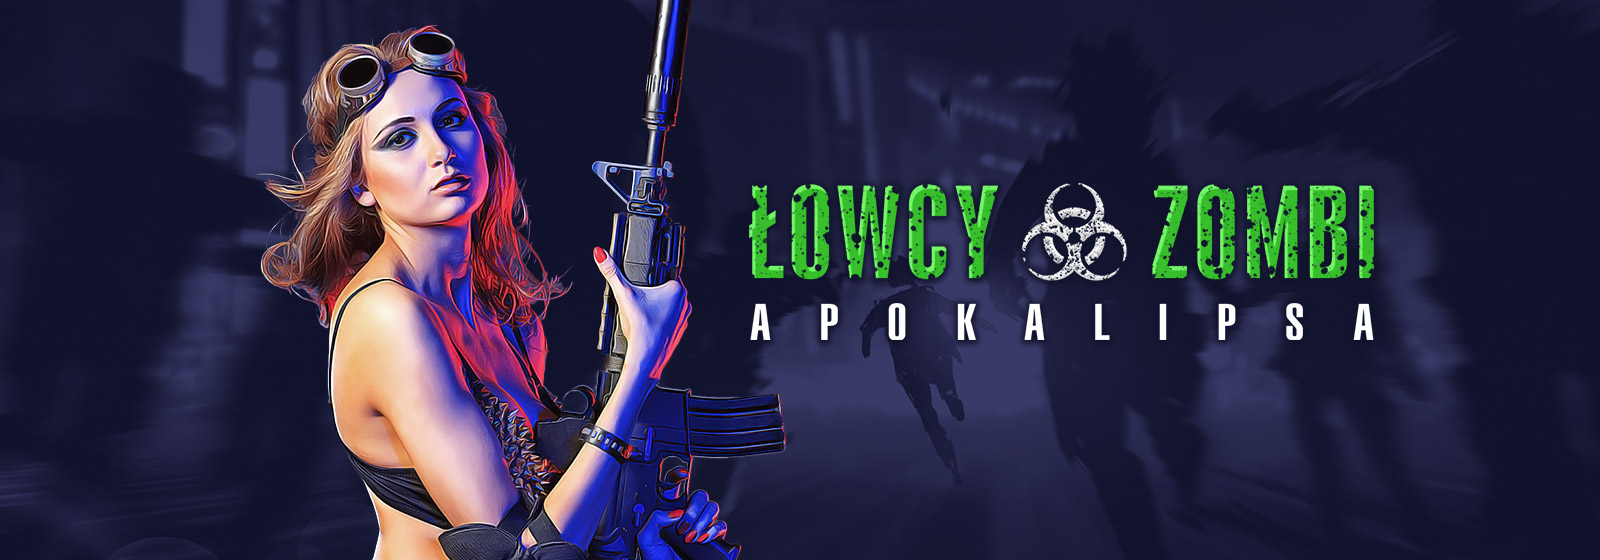 Łowcy.Zombi.banner